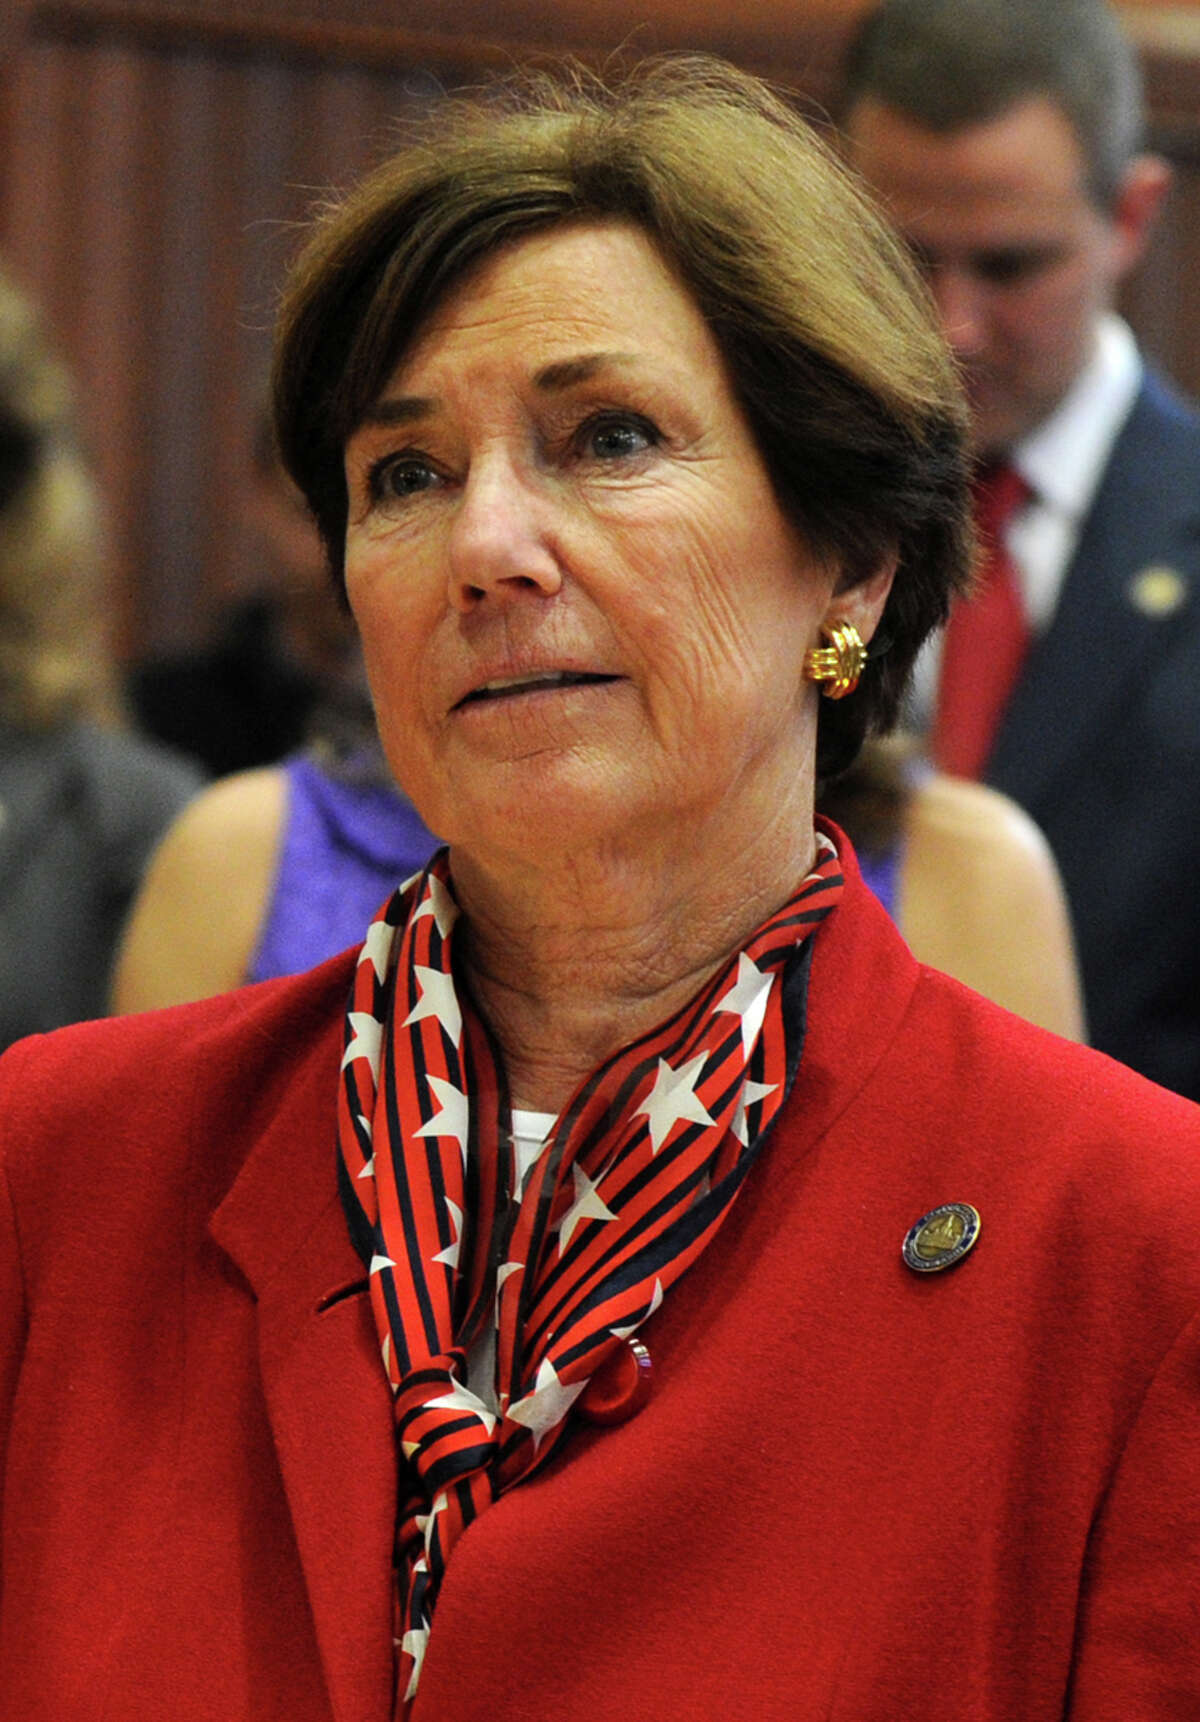 Rep. Livvy Floren, R-149, of Greenwich, at the Capitol in Hartford, Conn. on Thursday, February 6, 2014.